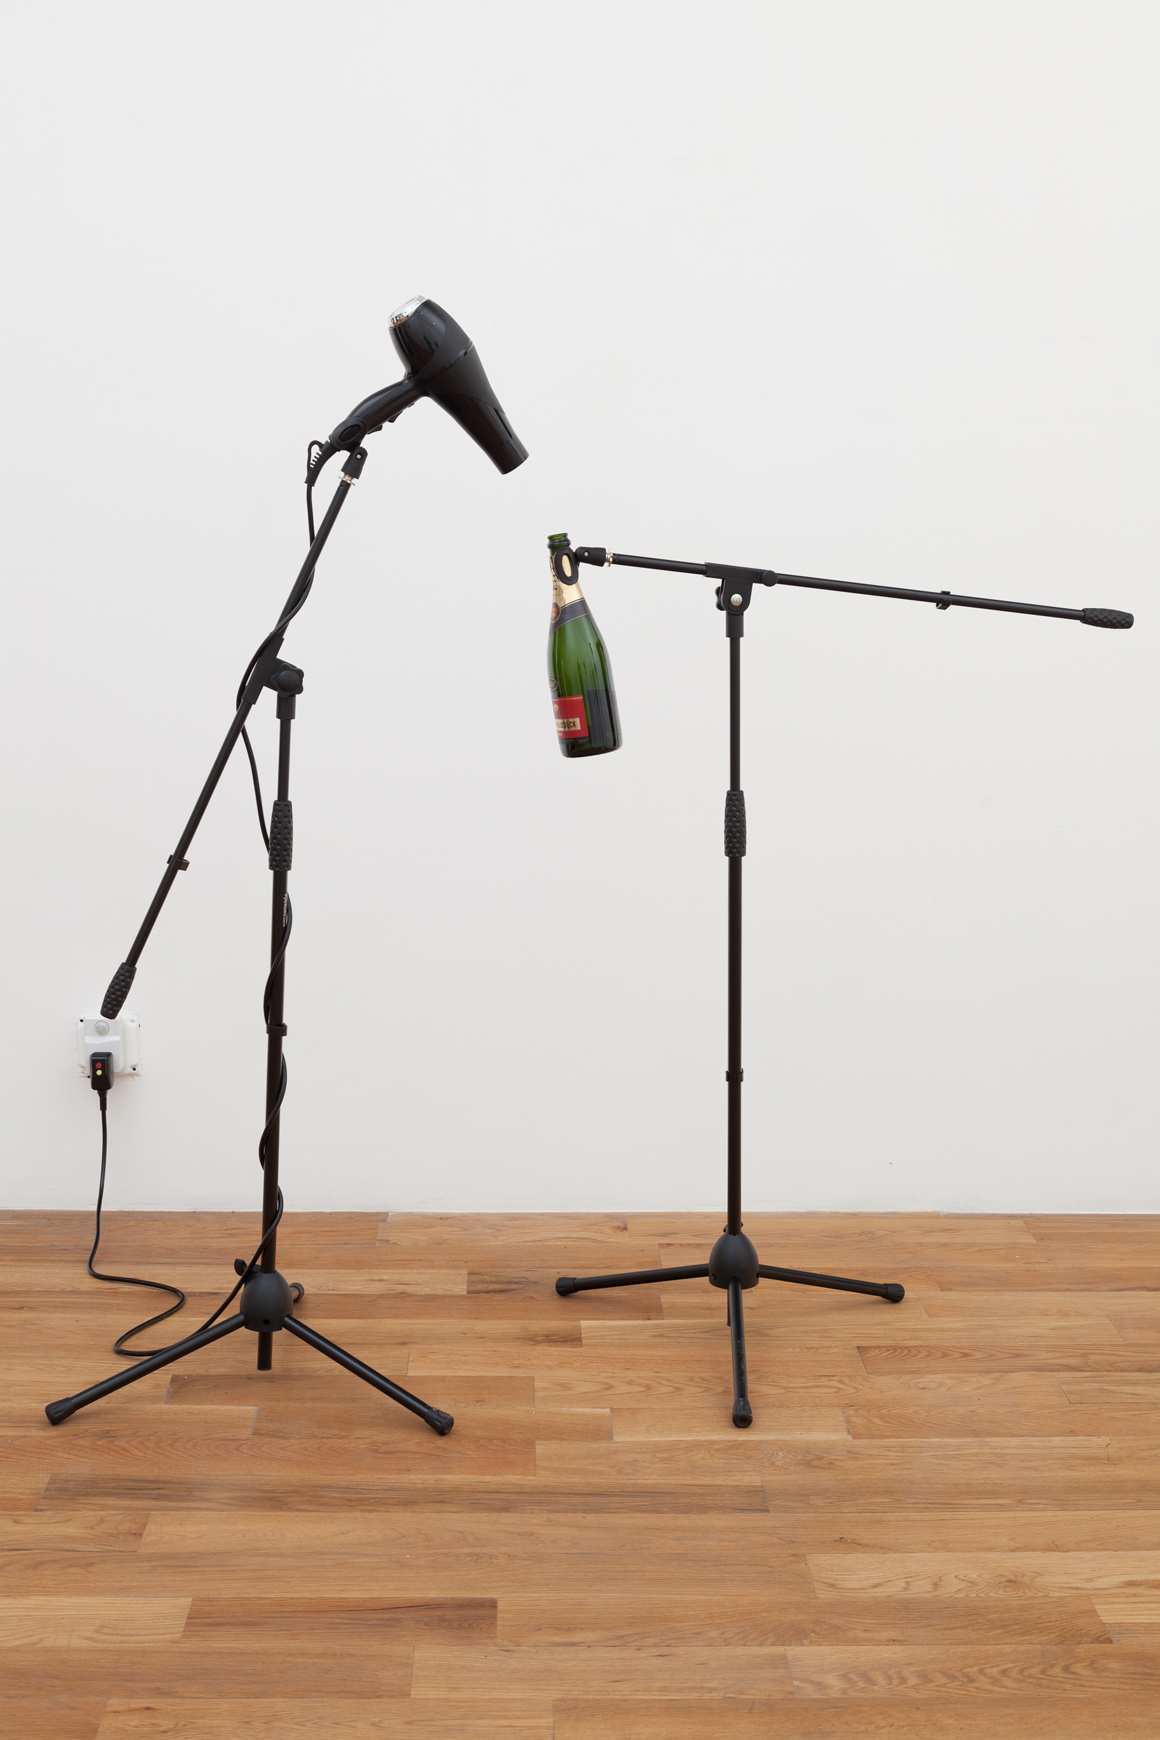 "<p><span class=""name"">Sarah Schönfeld</span><br><em>Sirens</em><span class='media'>Microphone stands, blowdryer, champagne bottle, motion activated switch</span>Variable<br>2016<br><a class='inquire' href='mailto:info@gildargallery.com?subject=Artwork Inquiry SSCH0001&body=I am interested in finding out more about Sirens by Sarah Schönfeld'>Inquire</a></p>"